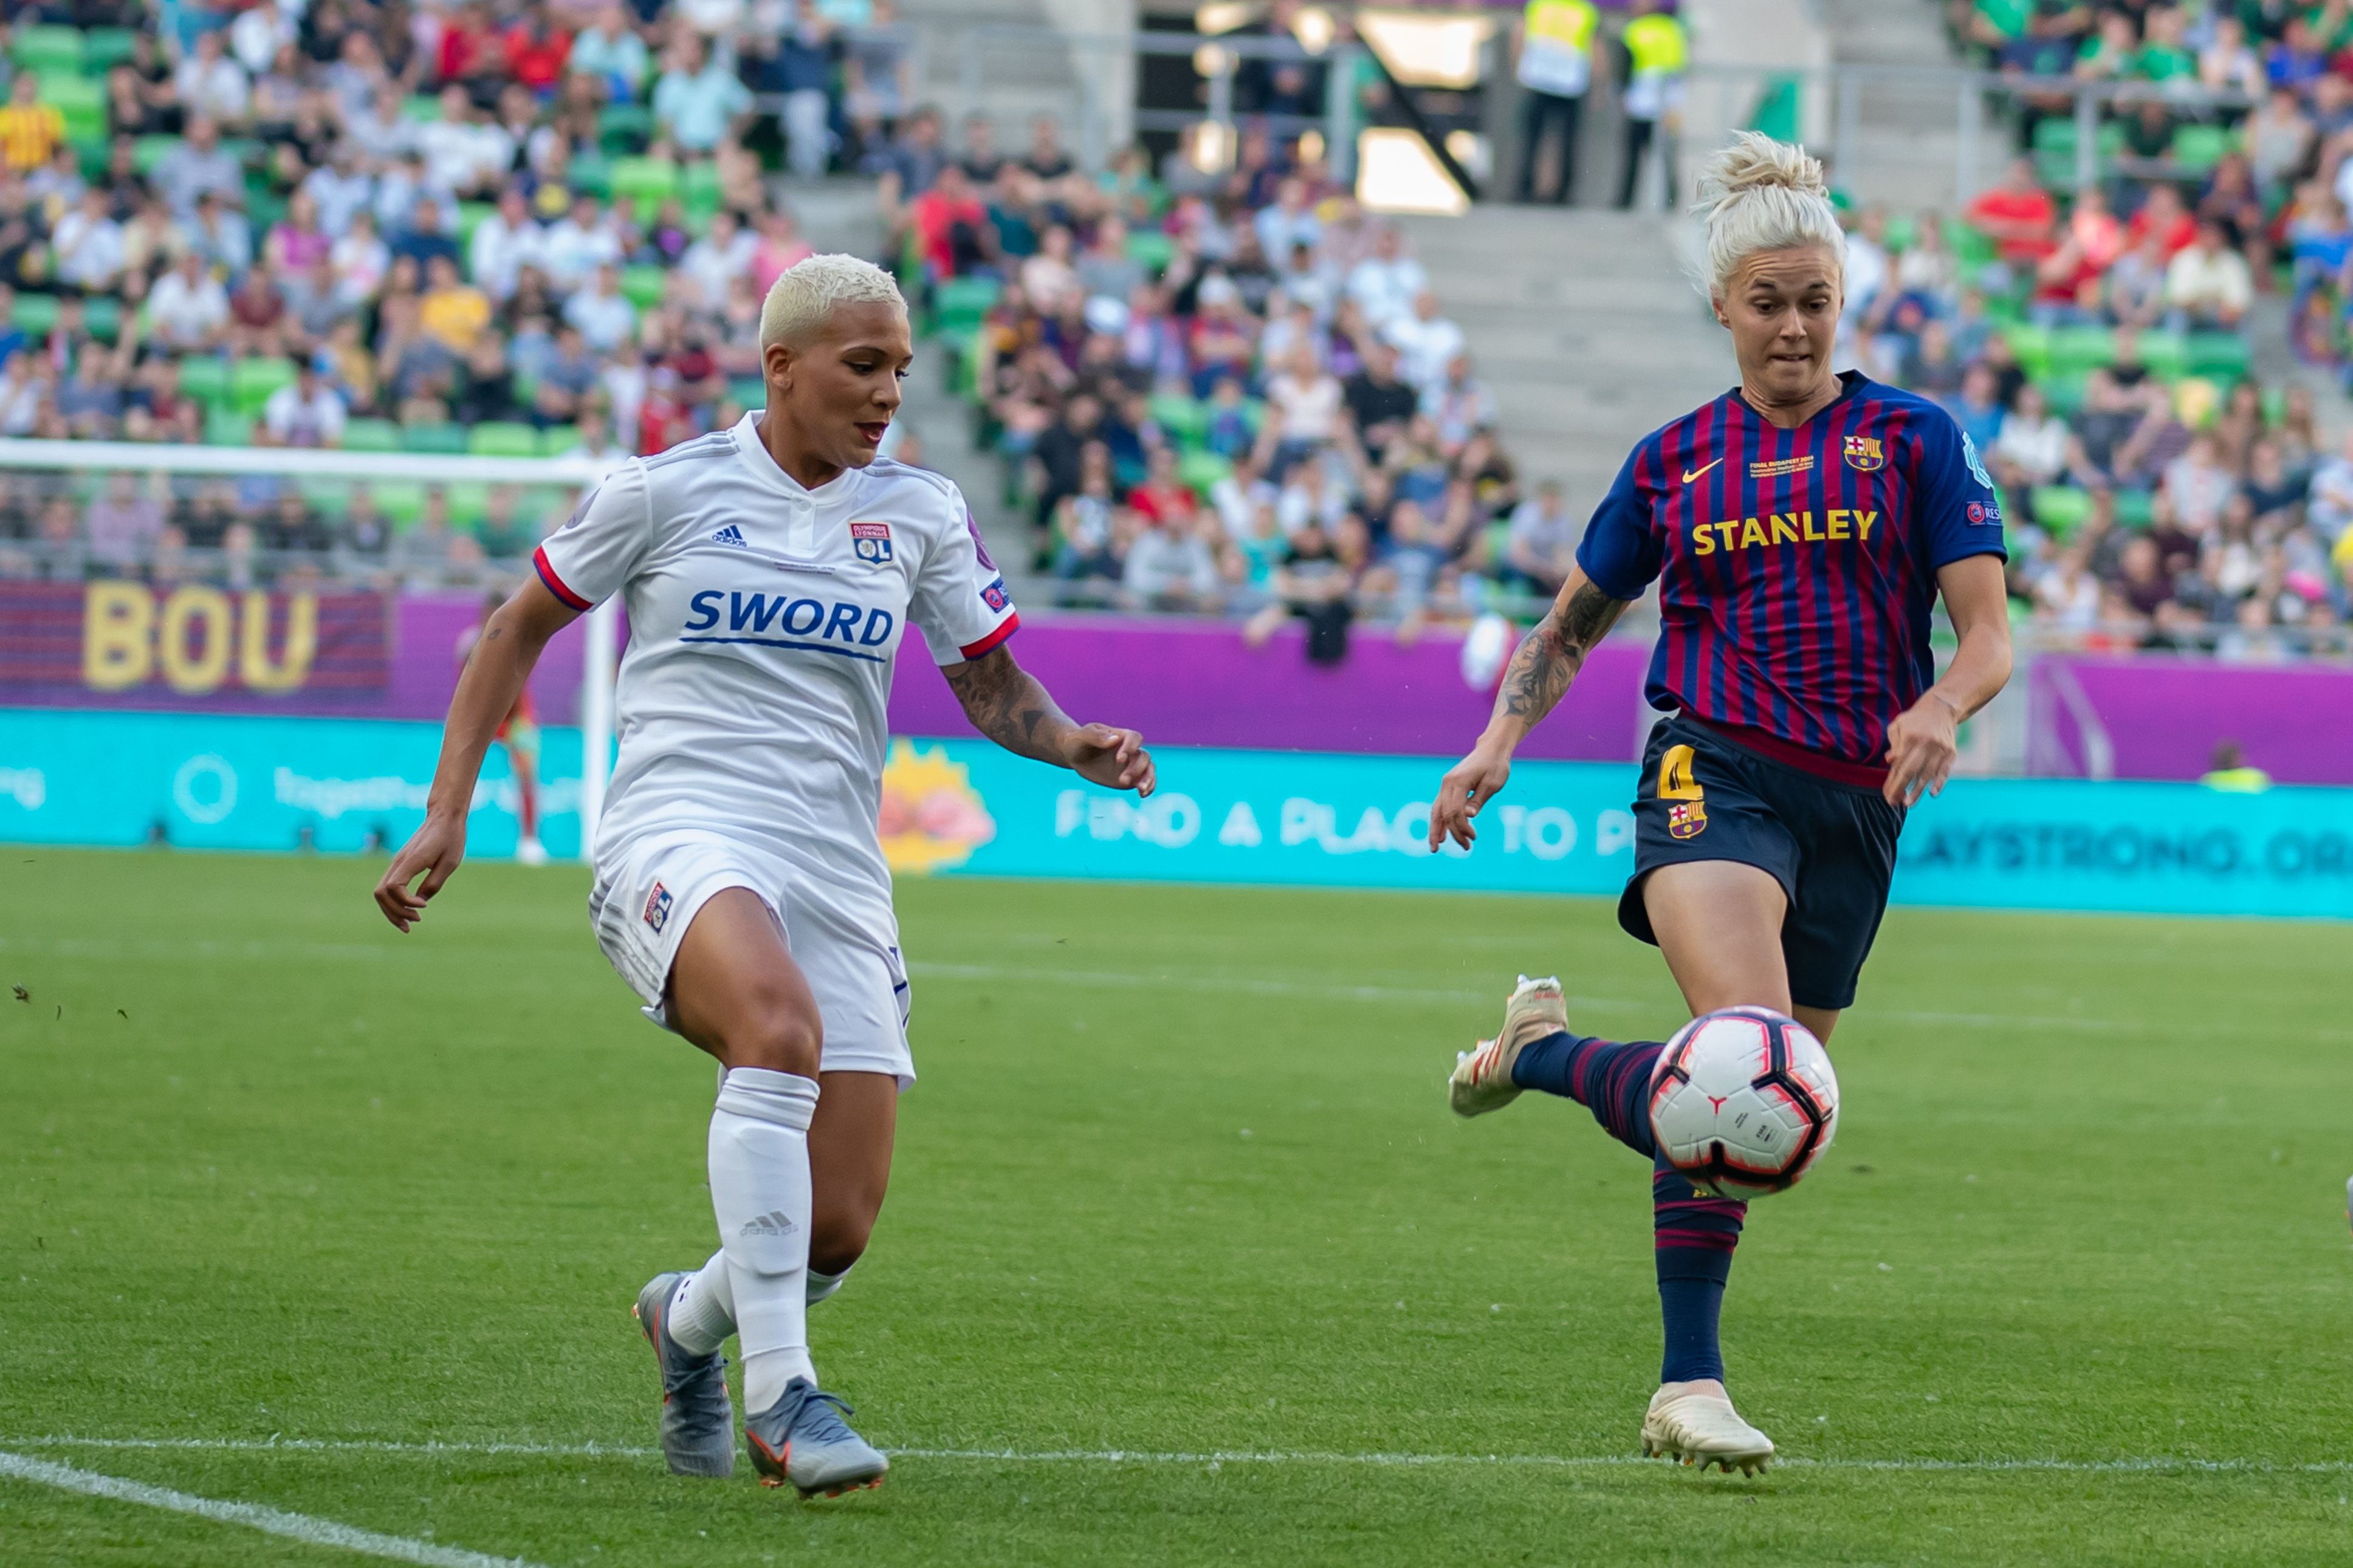 File 2019 05 18 Fussball Frauen Uefa Women S Champions